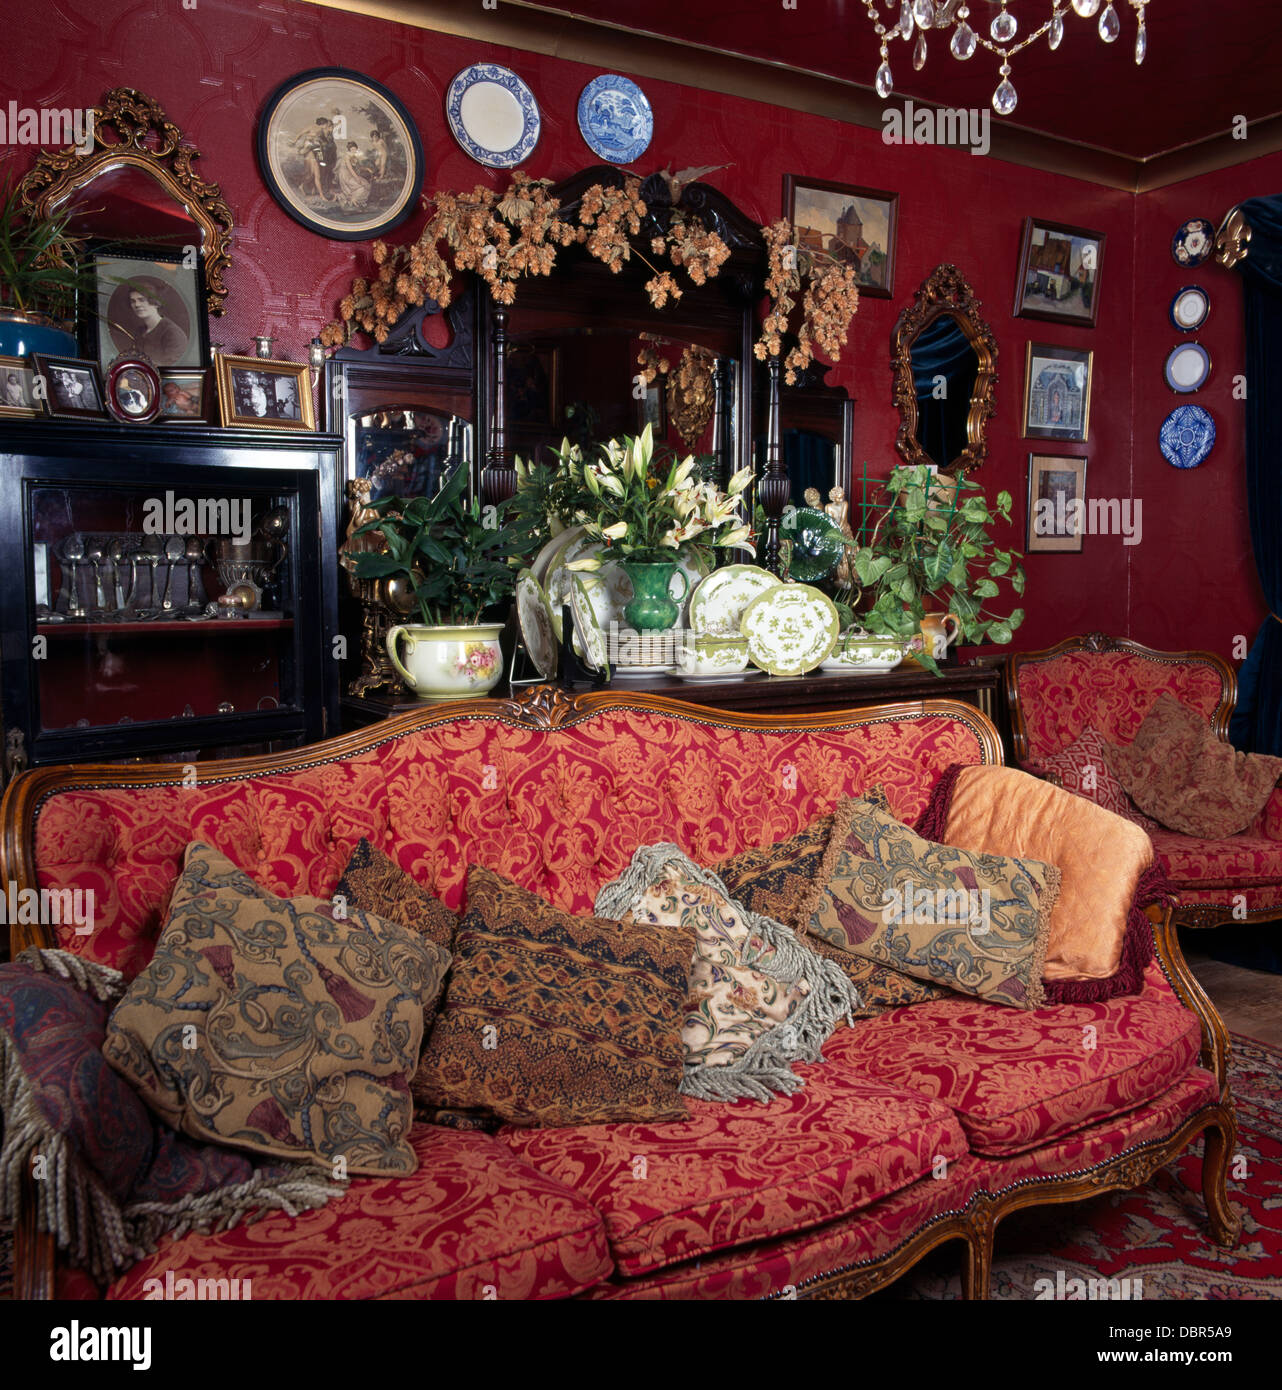 Red patterned French-style sofa piled with cushions in dark red ...